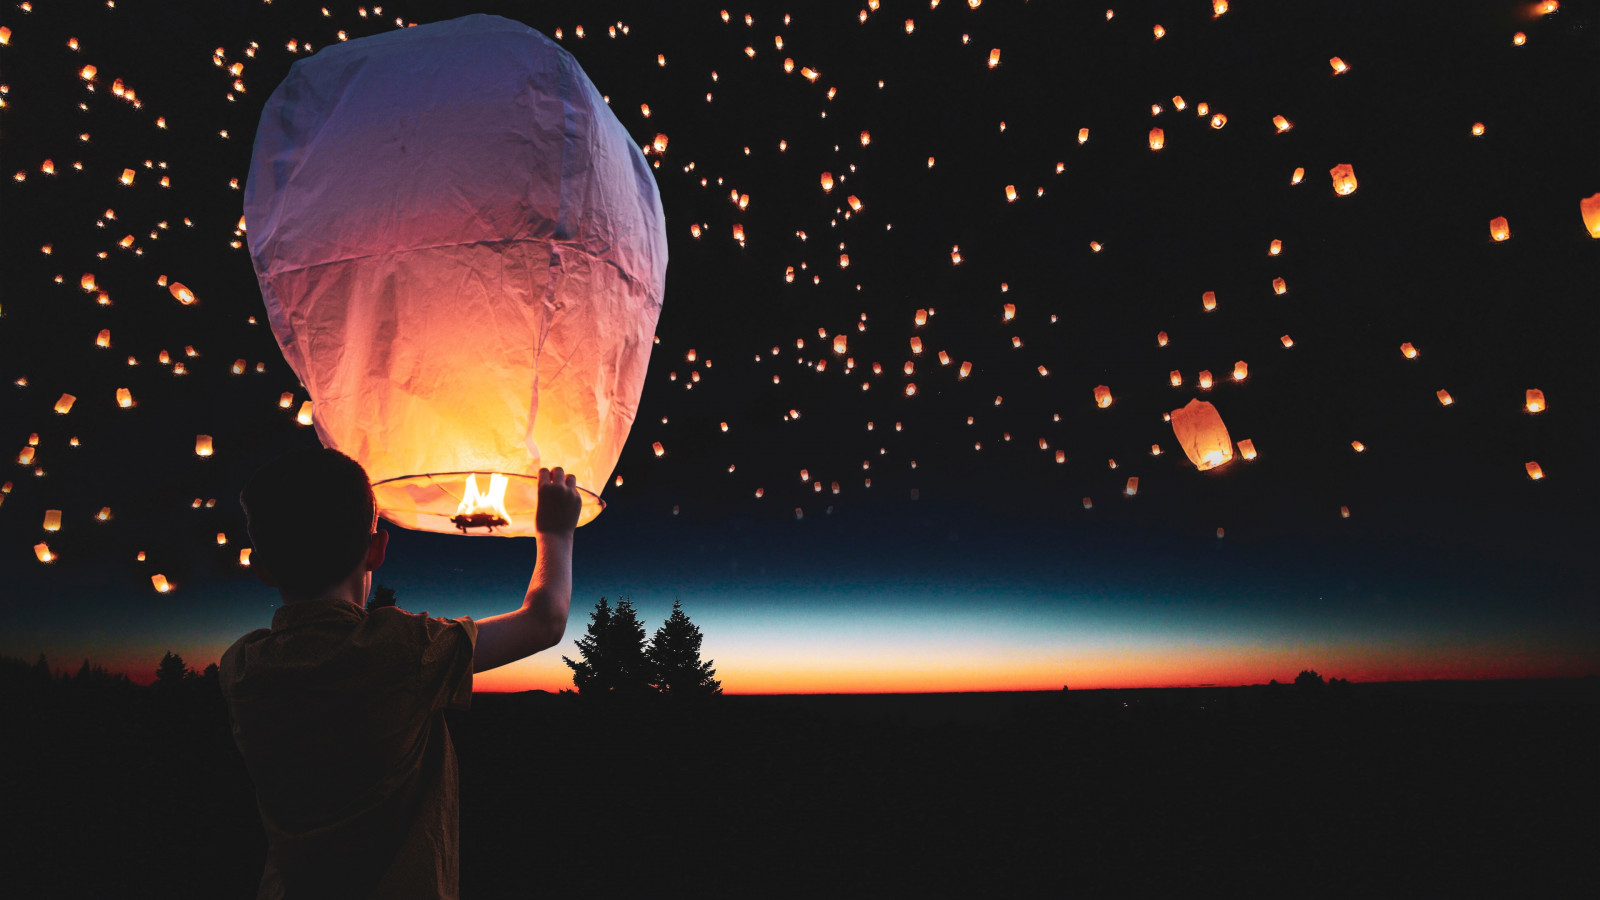 Lanterns floating on the night sky wallpaper 1600x900